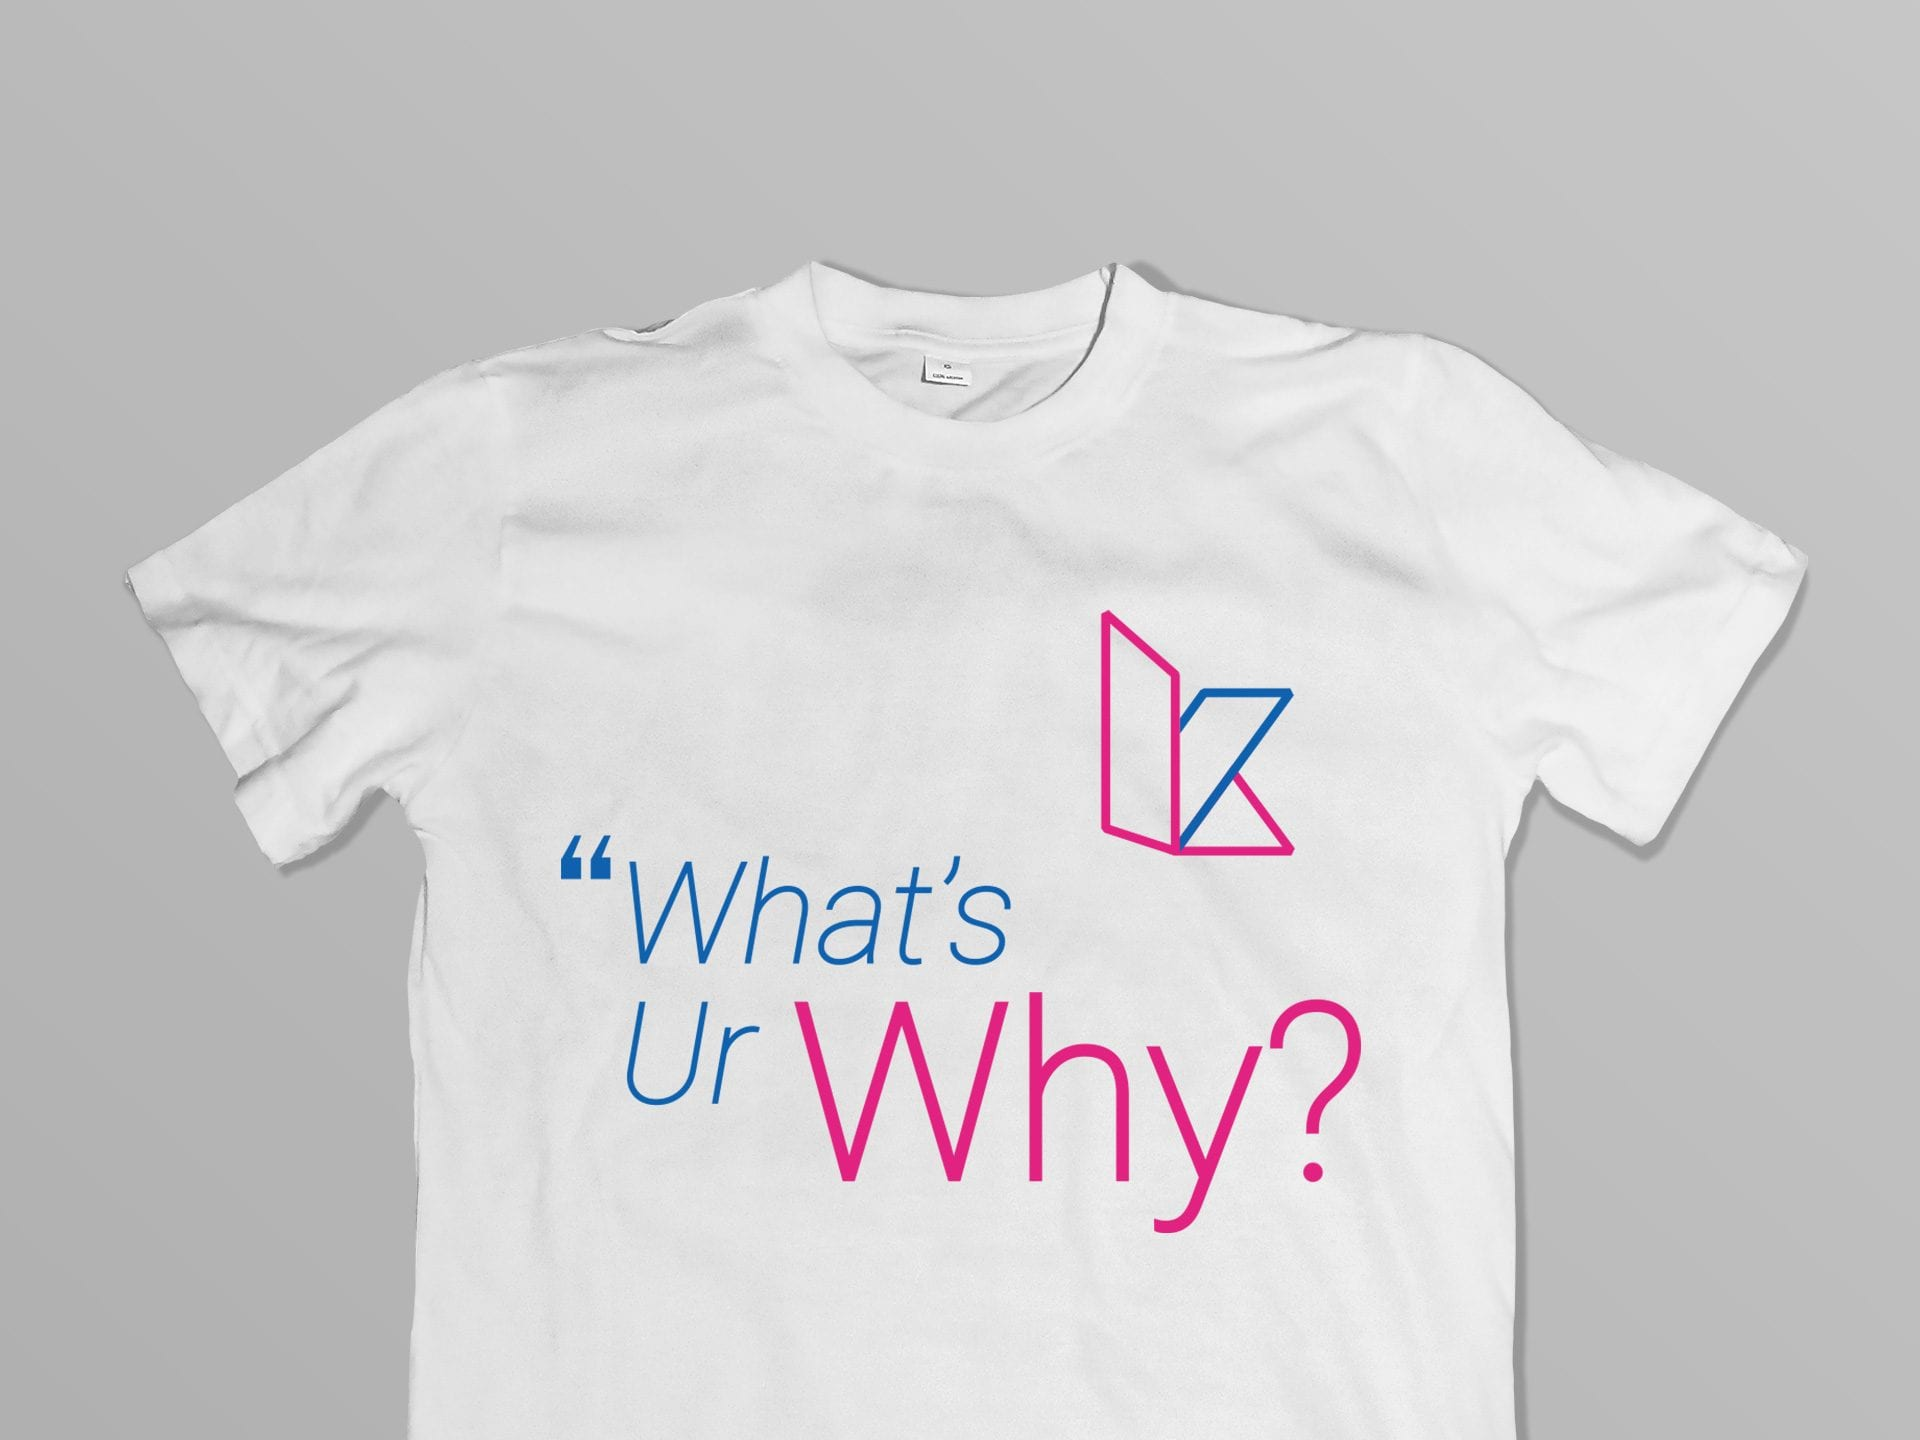 Y5 Creative Case Studies Karina LeBlanc Collateral T Shirt 2019